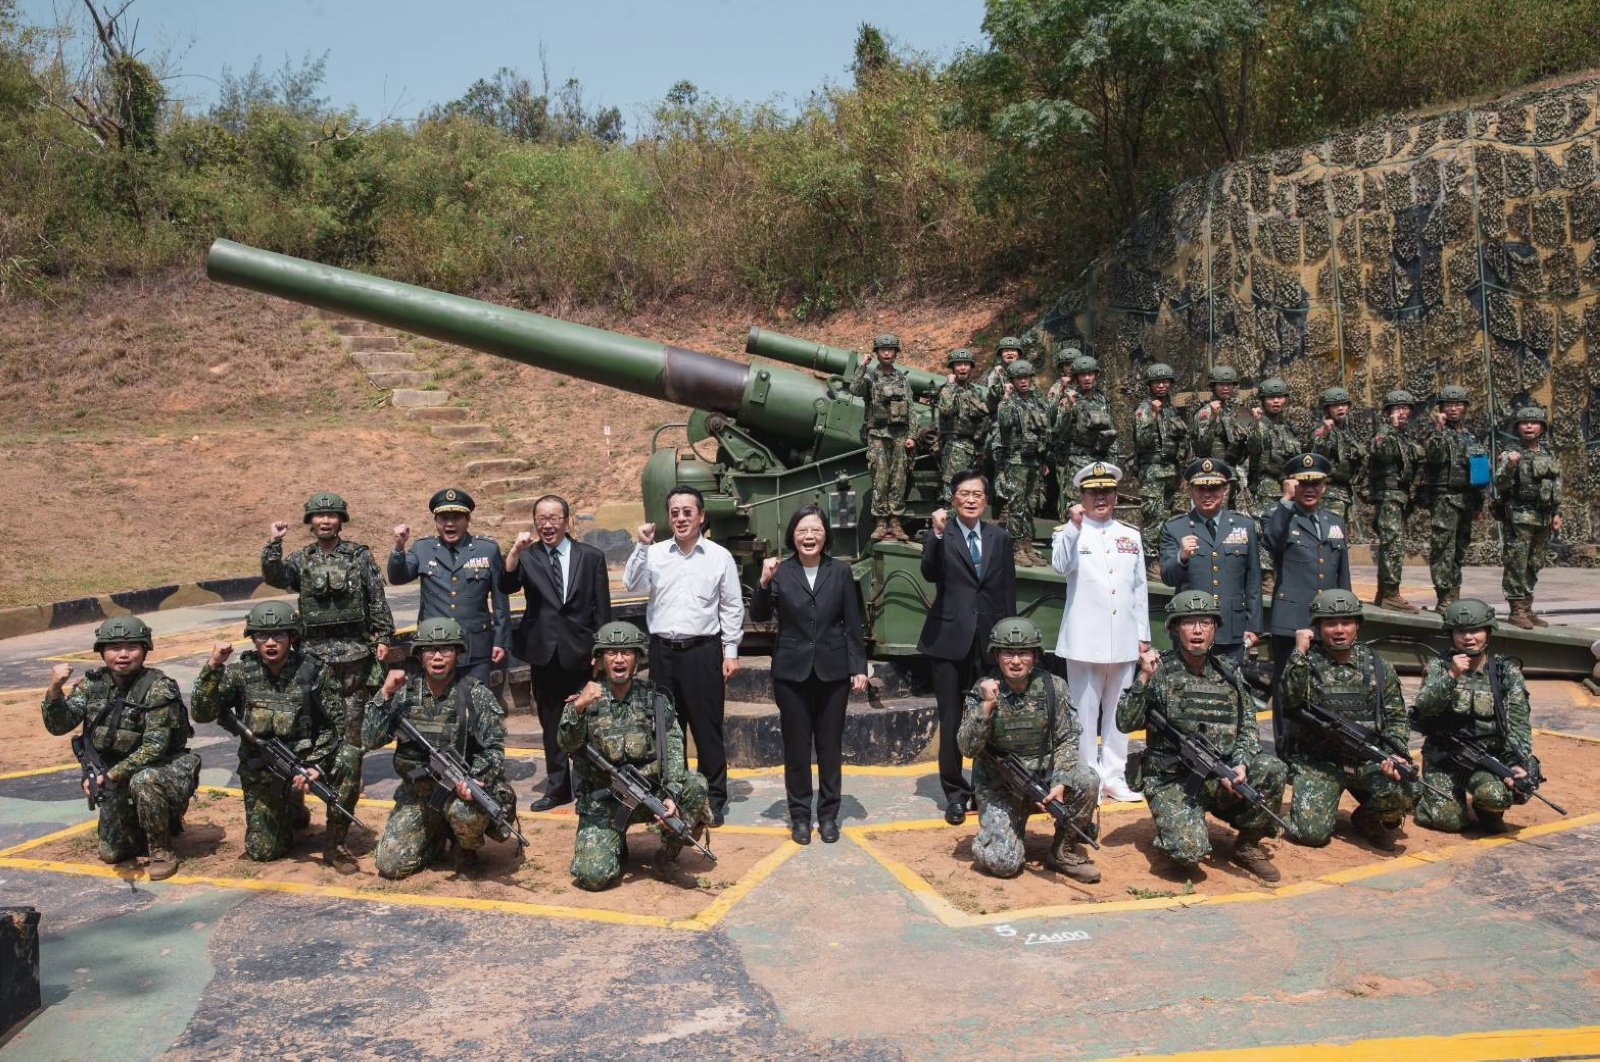 A handout photo made available by the Taiwan Presidential Office, shows Taiwan President Tsai Ing-wen (C) pose for a photograph next to military personnel during her visit to attend the 62nd anniversary of the Second Taiwan Strait crisis in Kinmen, Taiwan, Aug. 23, 2020. (EPA Photo)